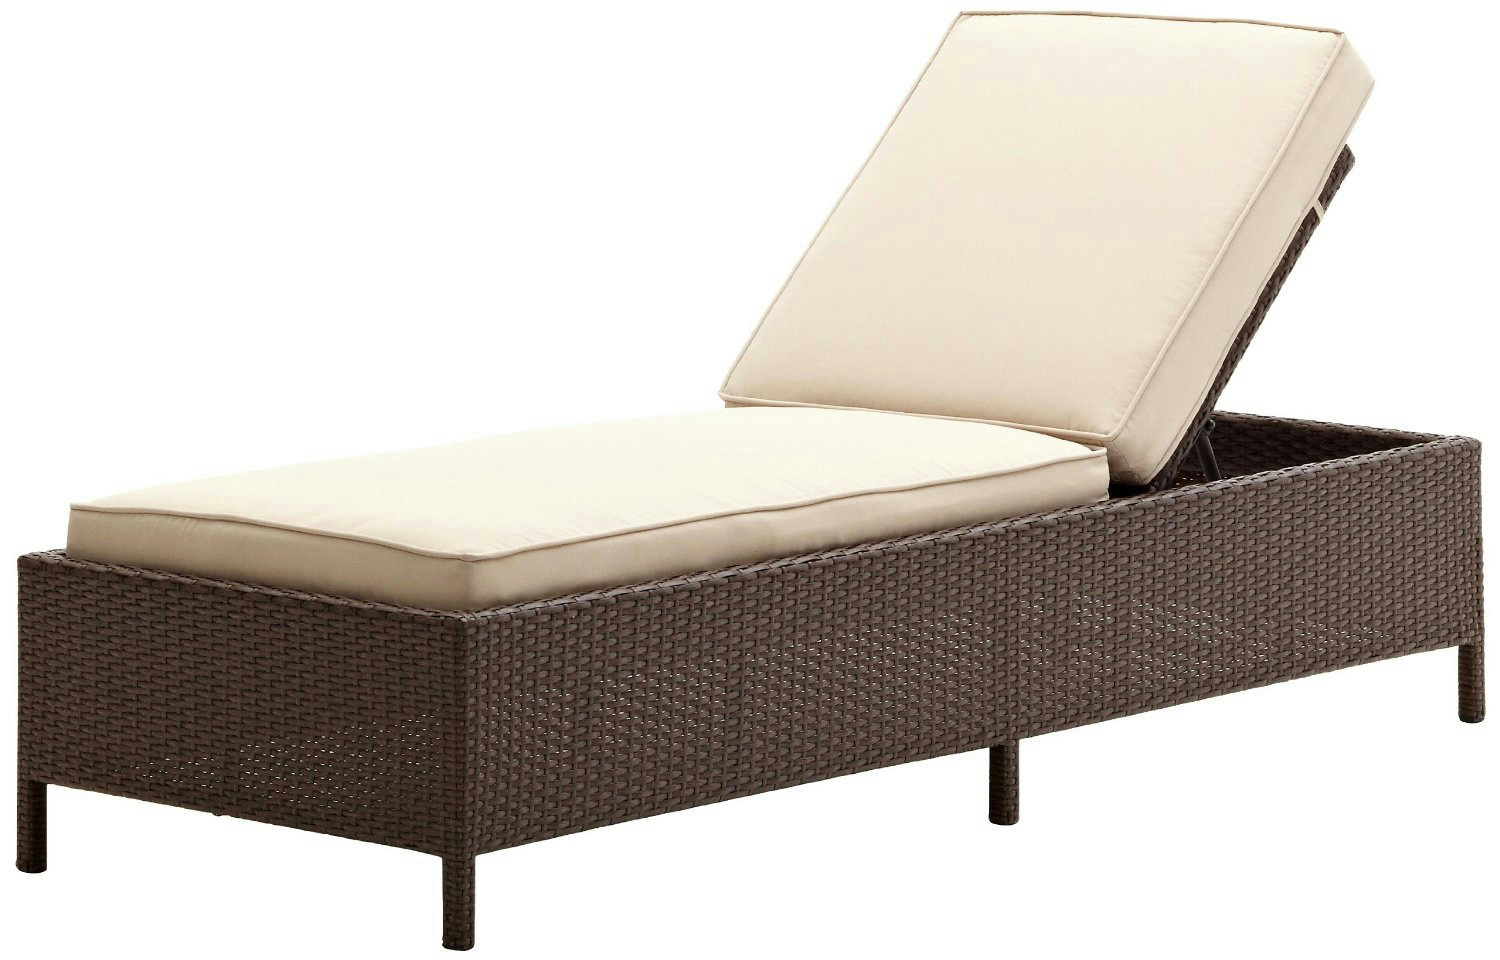 Strathwood griffen all weather wicker chaise lounge ebay for All weather chaise lounge